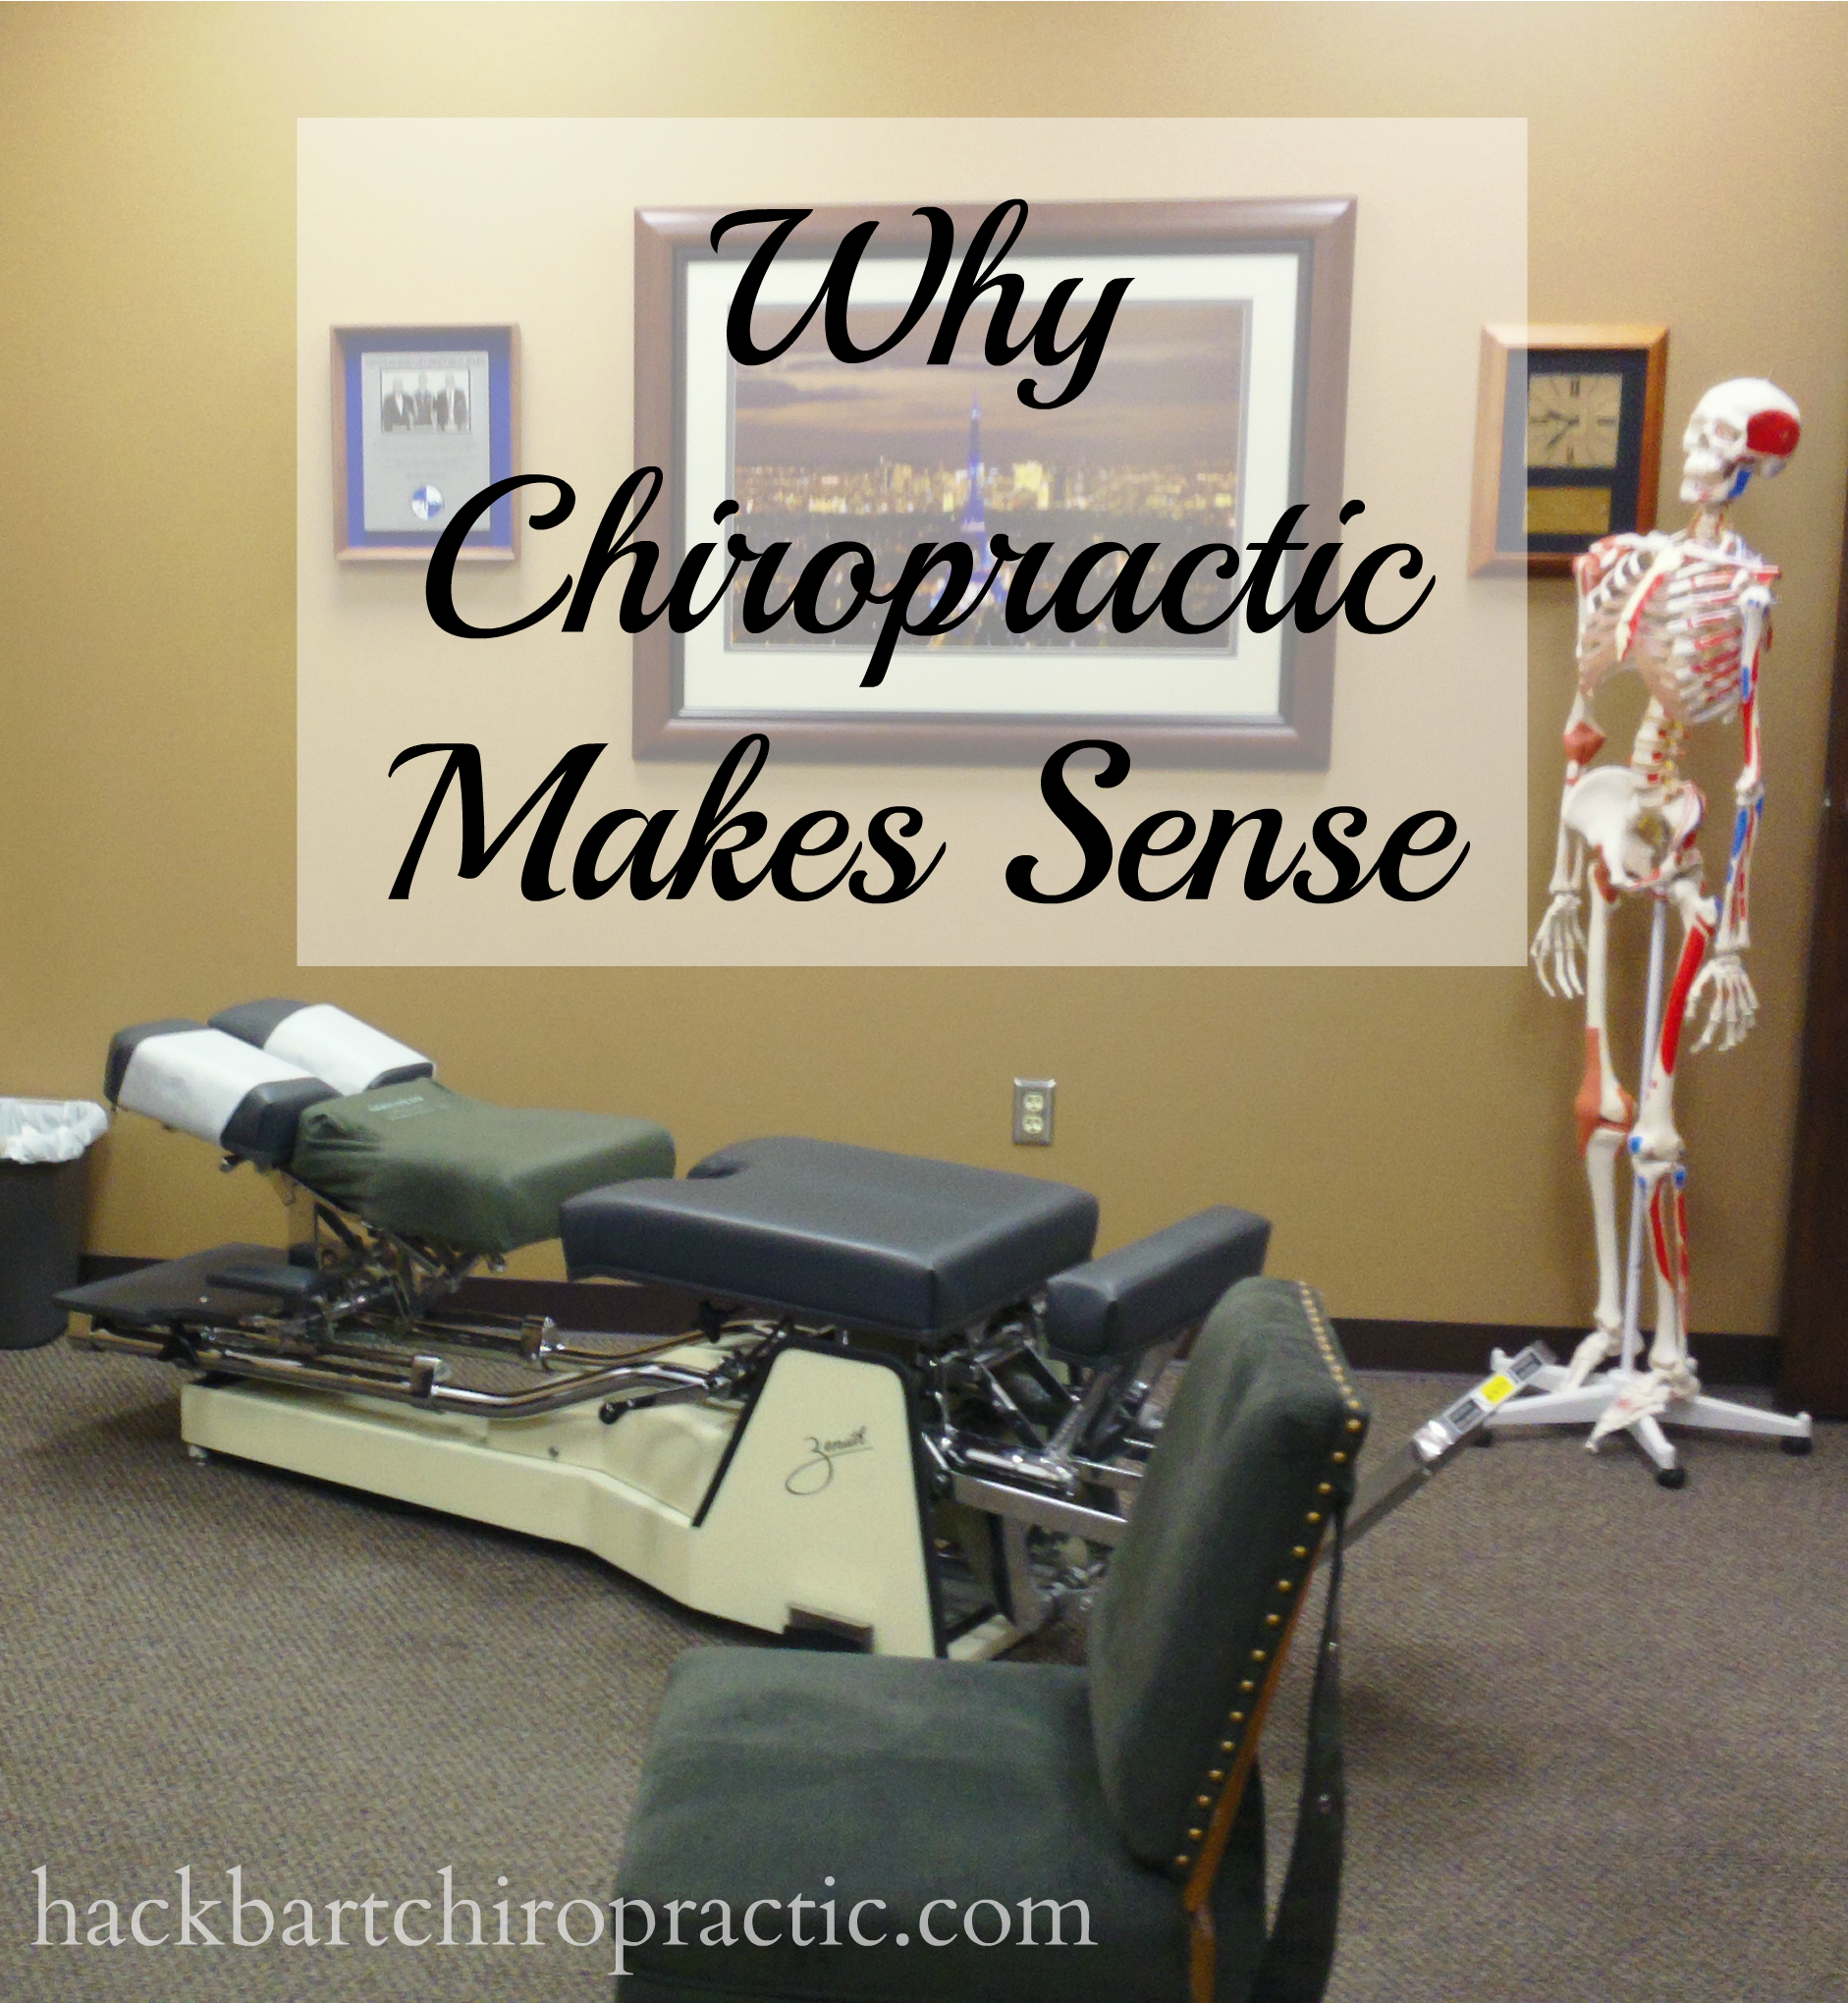 why chiropractic makes sense